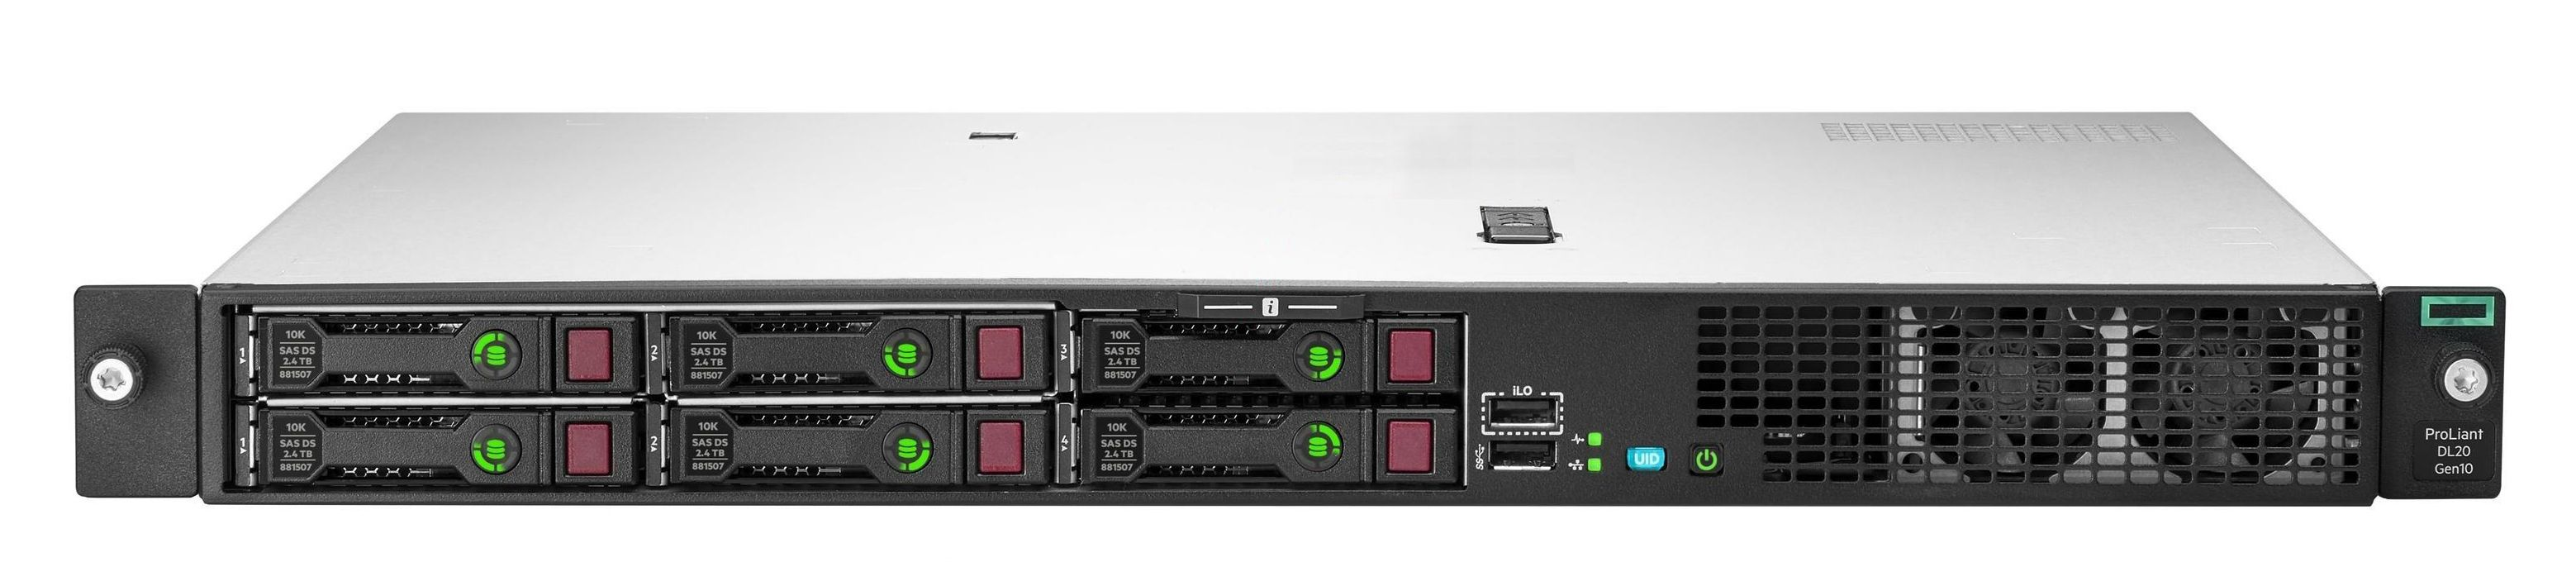 DL20 Gen10 2LFF E2234 (3.6GHz/4-core/71W)/ 16GB/ 290W PS/ Non HDD/ S100i/ 290W PS/ 3Y WTY